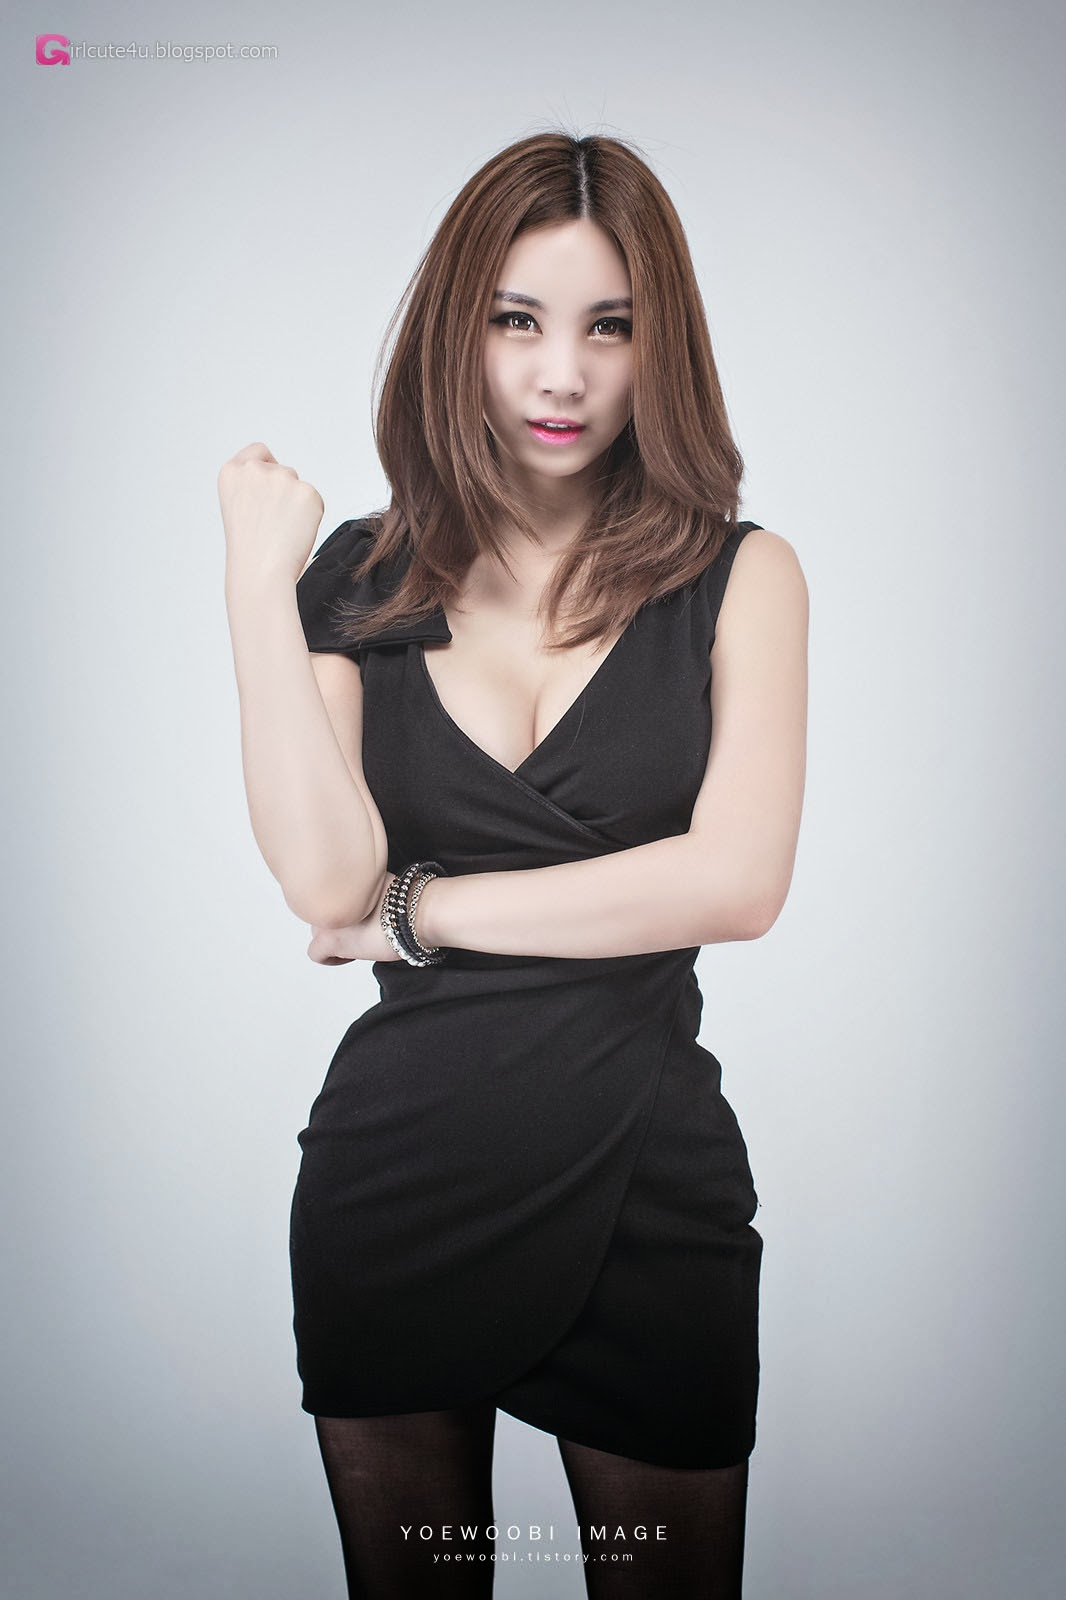 3 Lee Eun Yu - Little Black Dress - very cute asian girl-girlcute4u.blogspot.com